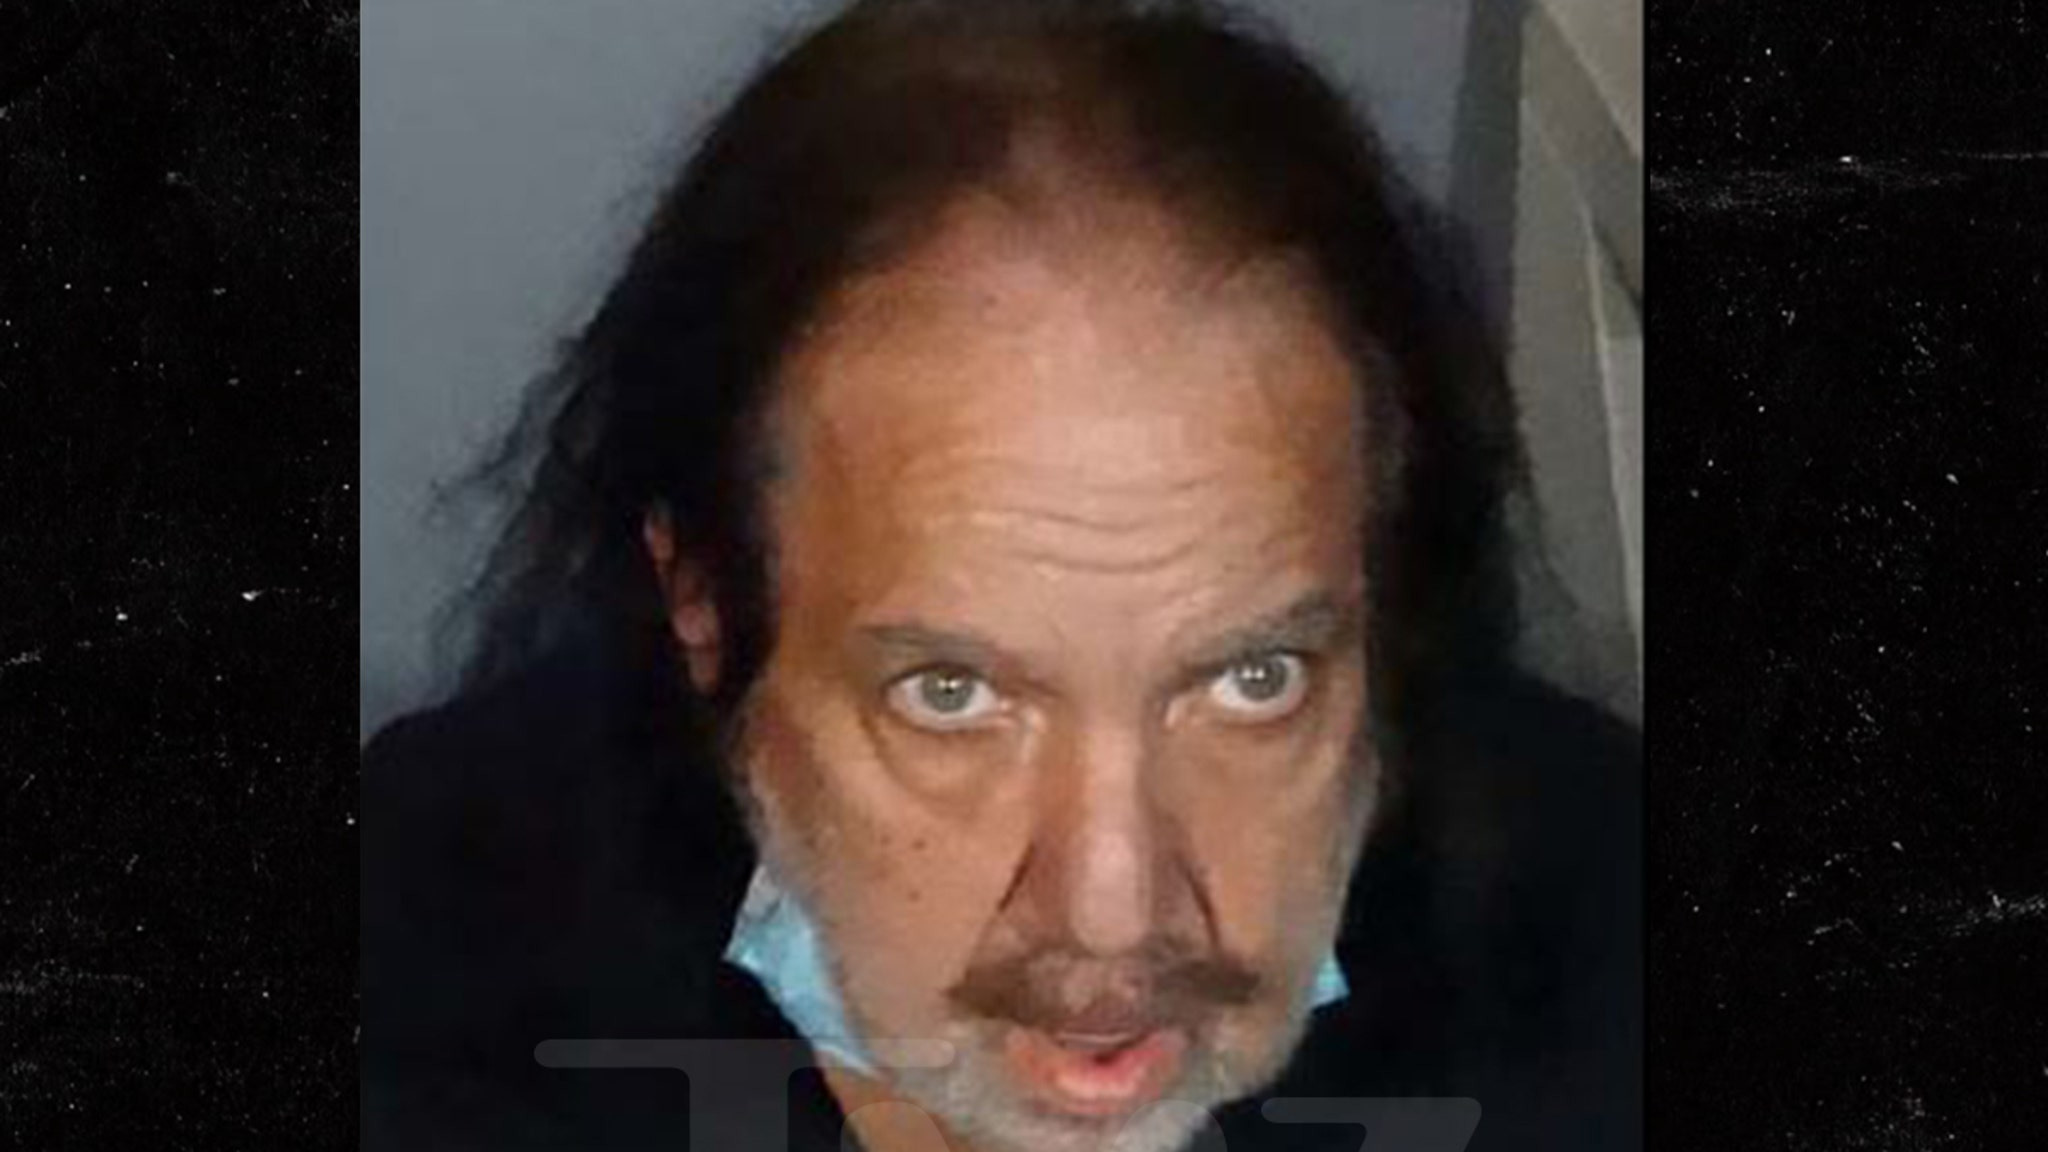 Ron Jeremy Mug Shot Released After Sexual Assault Charges